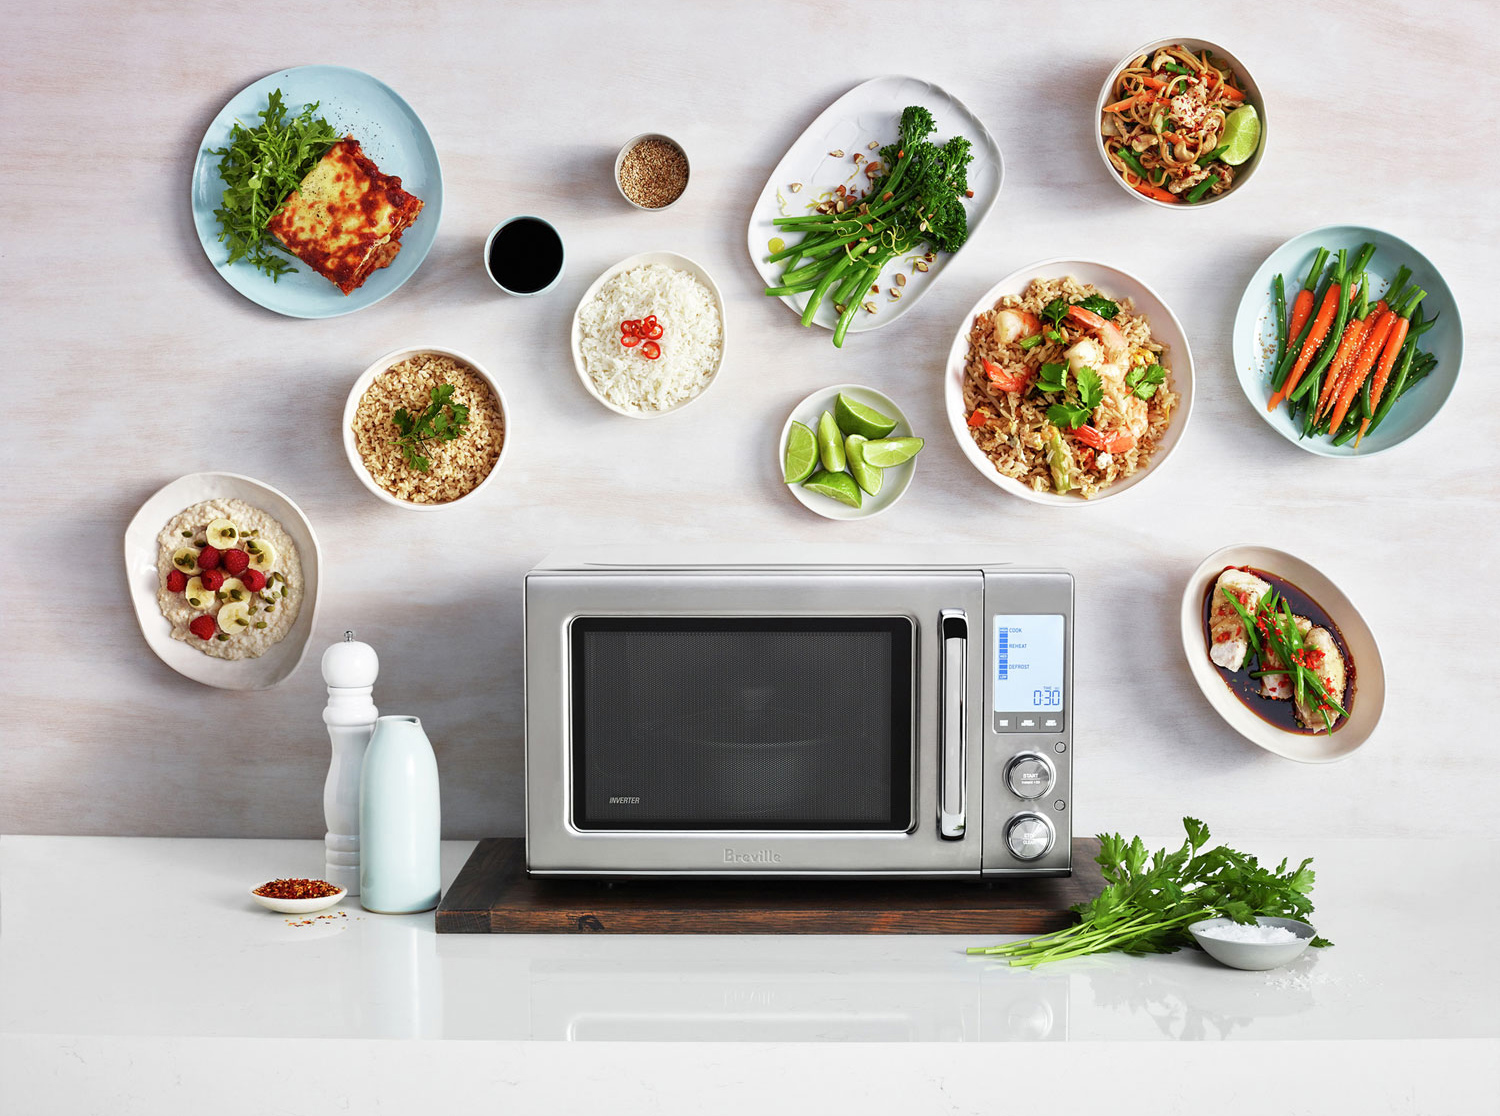 Microwaves 7: How to choose the best microwave oven for your